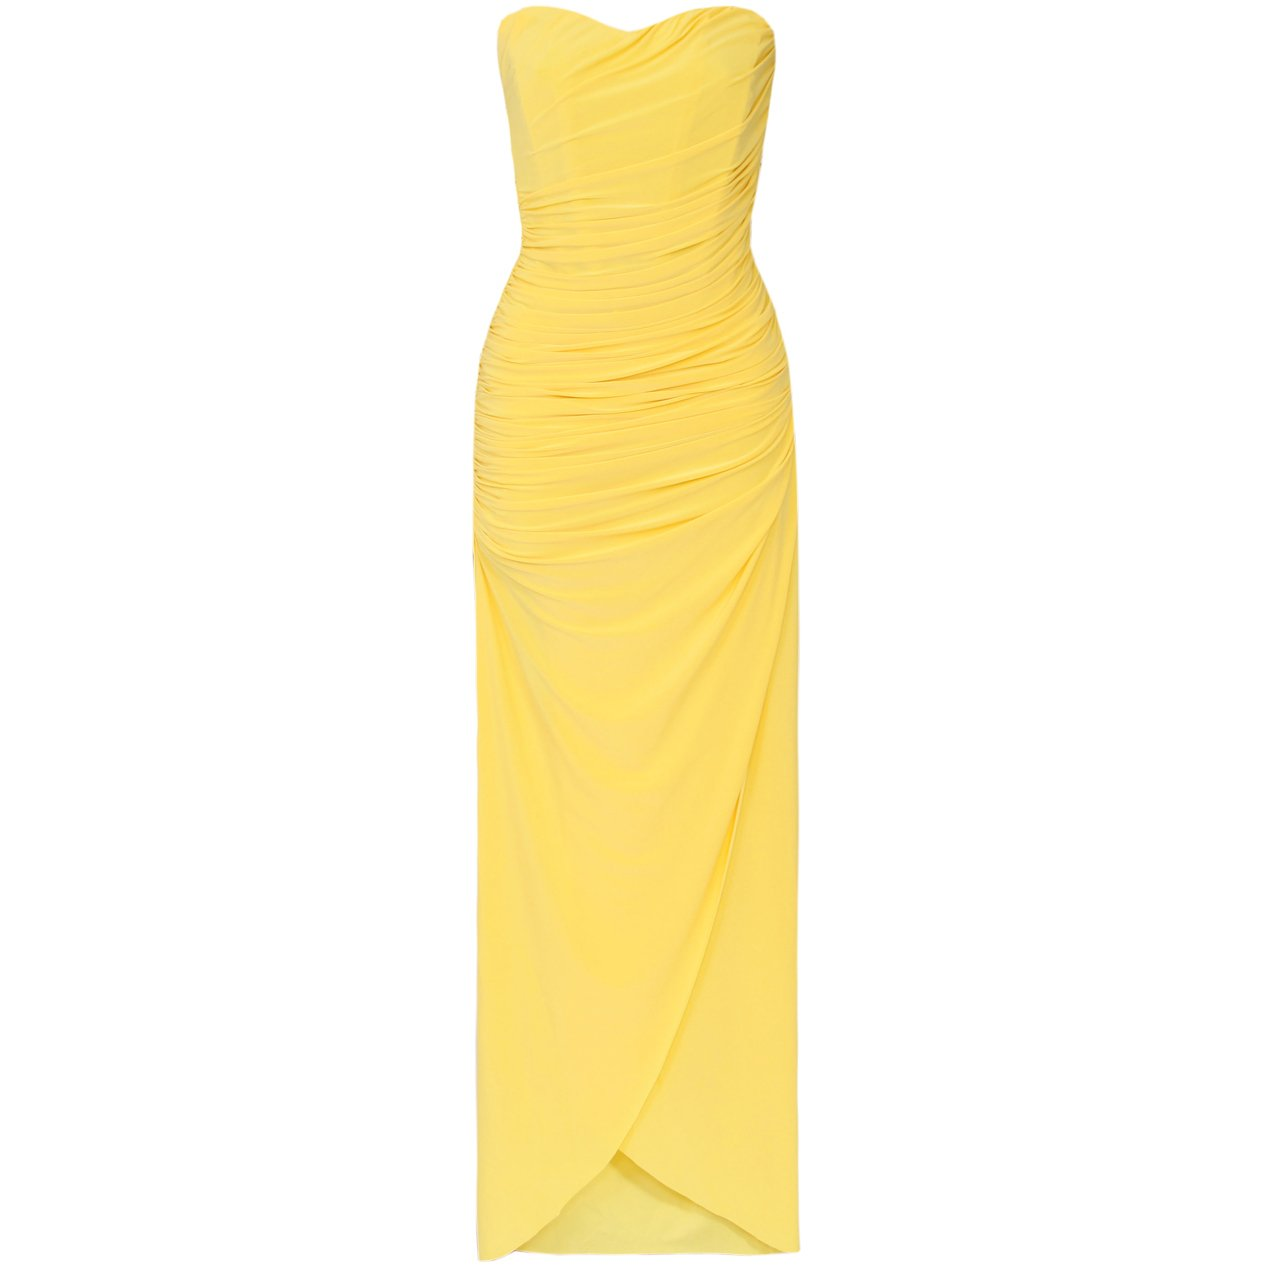 WOMENS LADIES YELLOW STRAPLESS LONG SUMMER EVENING CORSET PARTY PROM GOWN MAXI DRESS UK 16, US 12